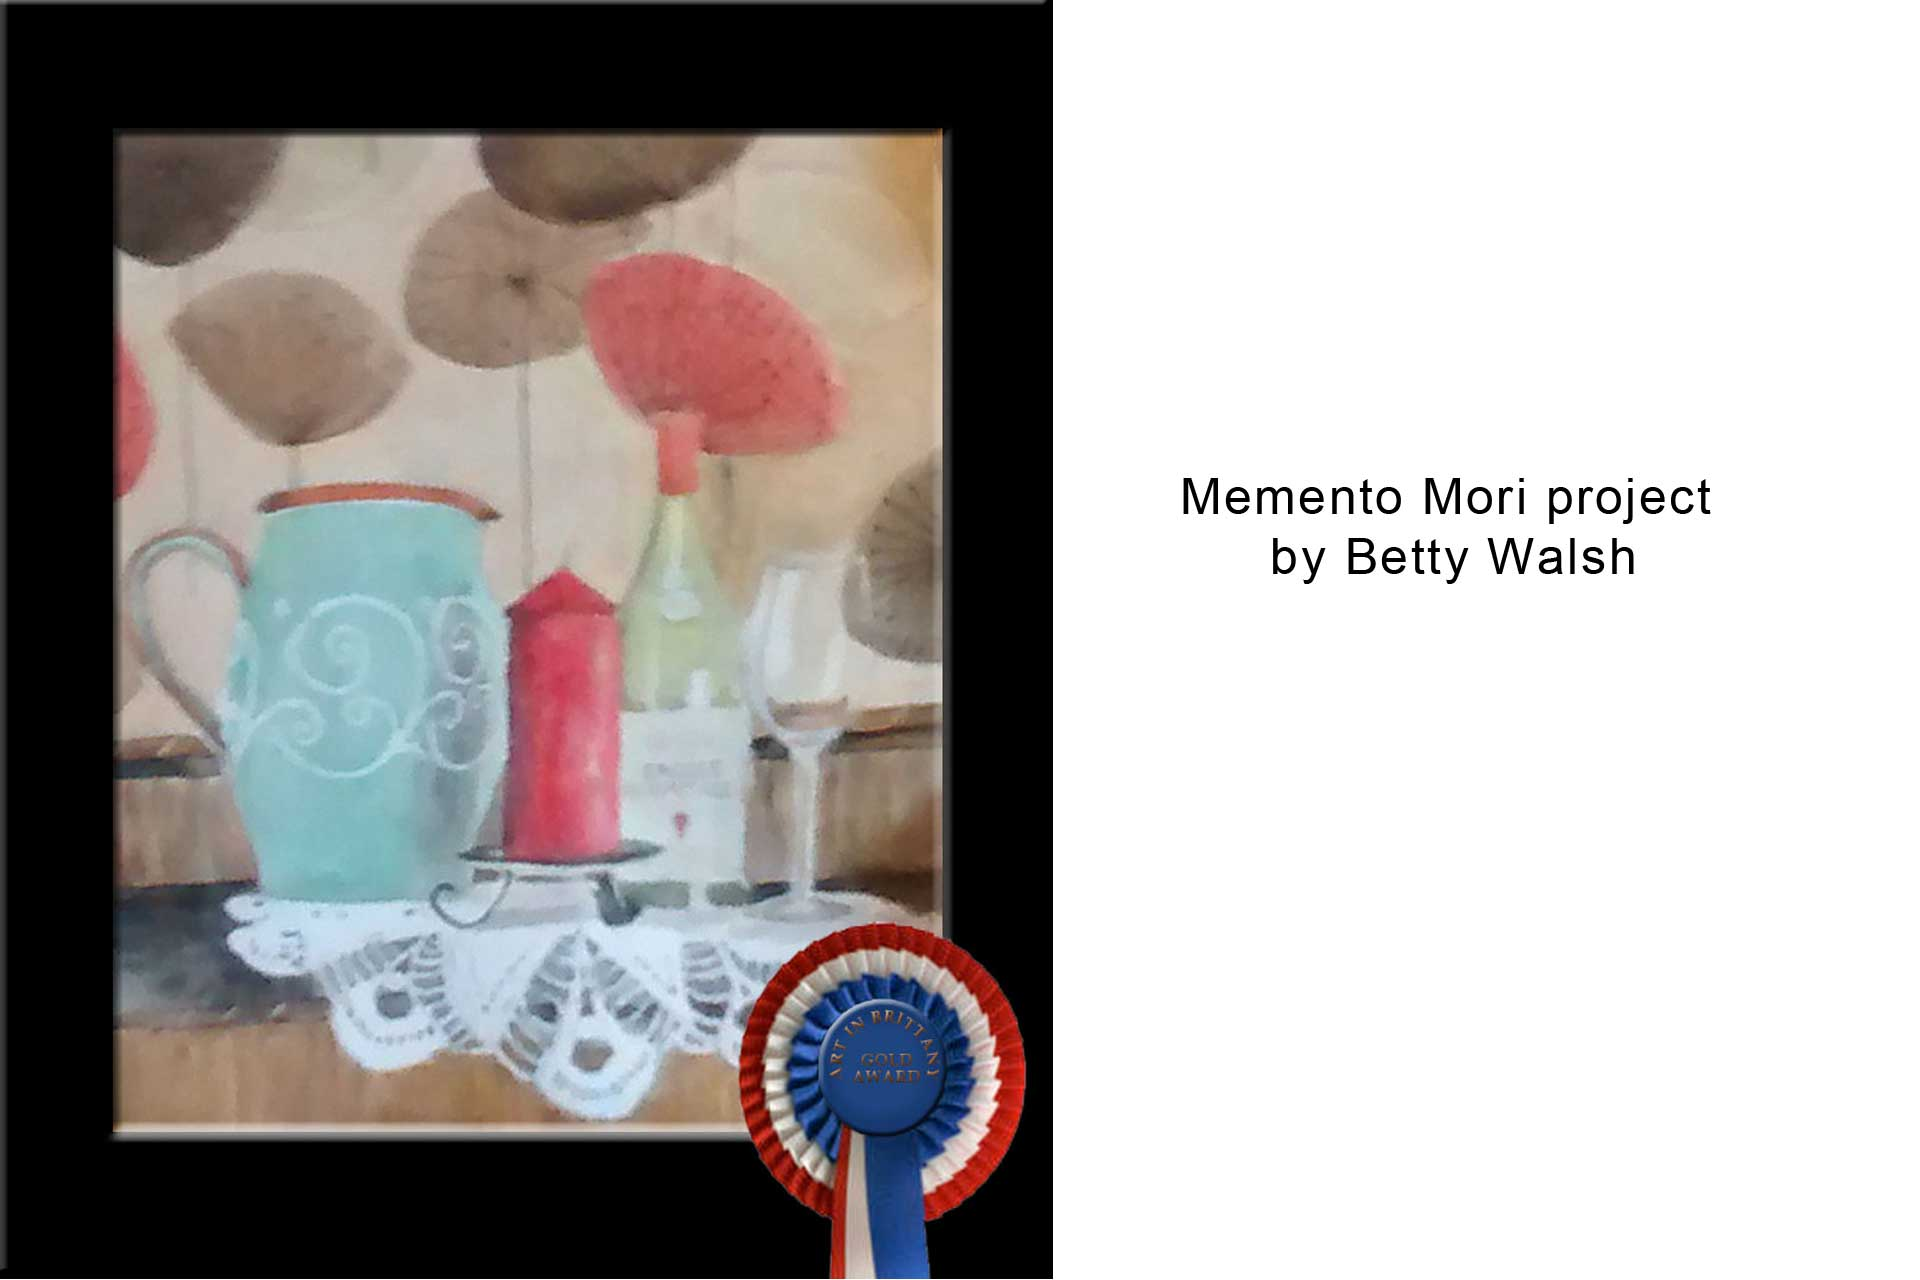 Betty Walsh Memento Mori